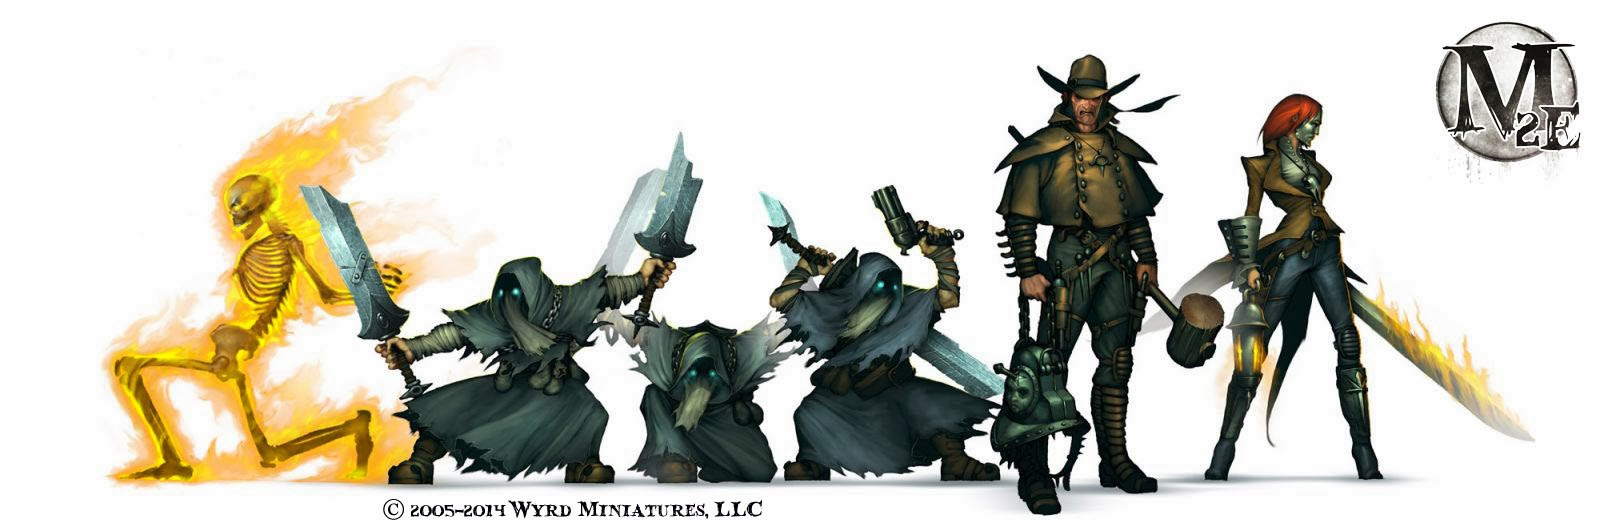 Malifaux Artwork